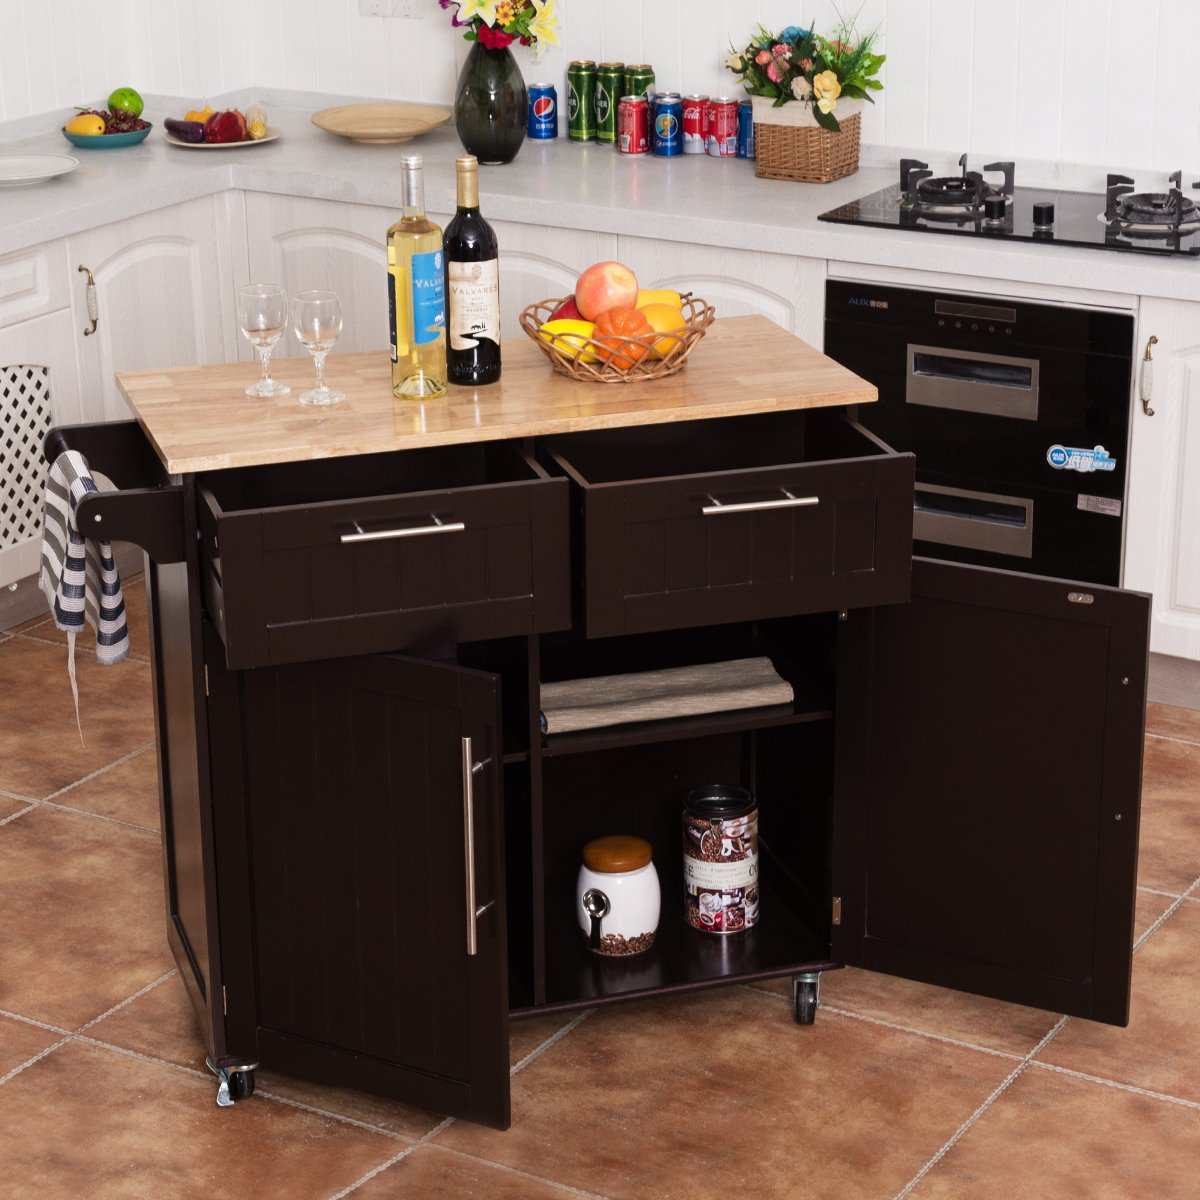 Giantex Kitchen Island Cart Rolling Storage Trolley Cart Home and Restaurant Serving Utility Cart with Drawers,Cabinet, Towel Rack and Wood Top by Giantex (Image #3)